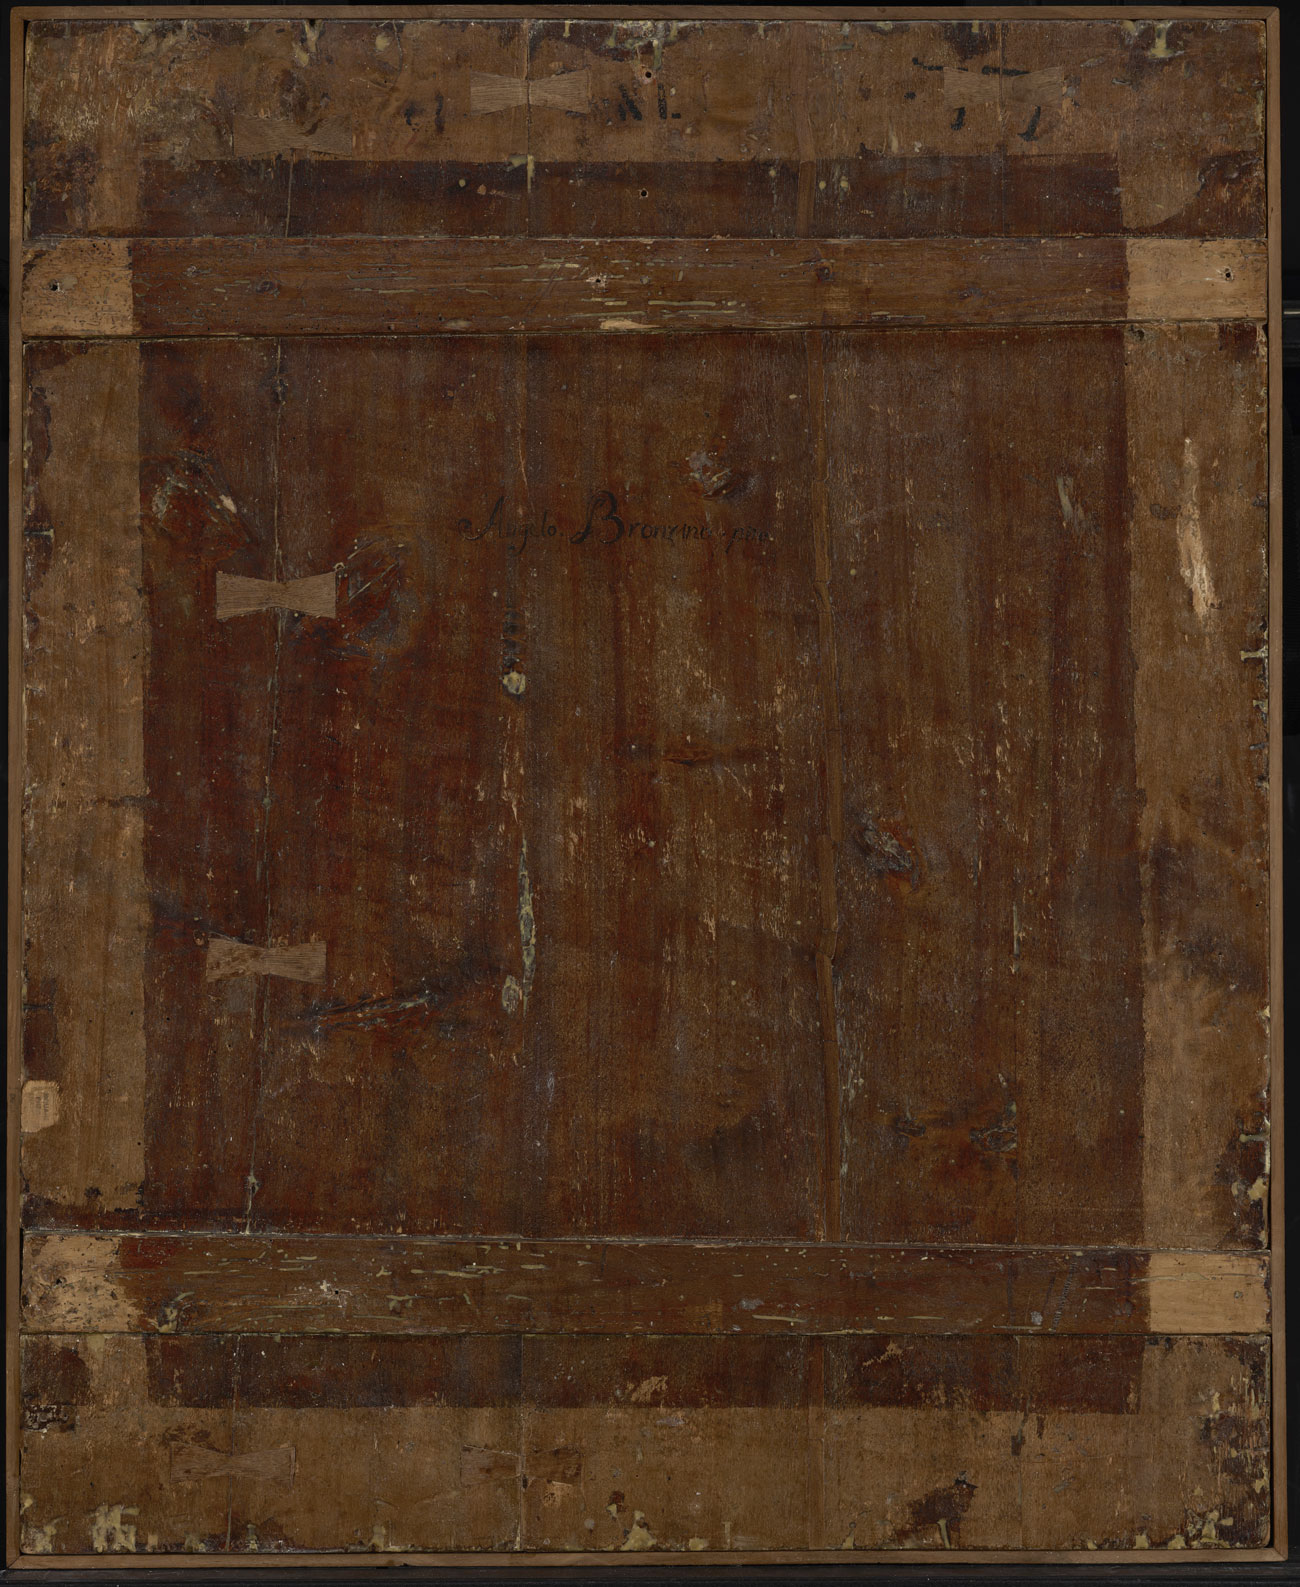 Wooden panel, with lighter wood creating a border around darker wood